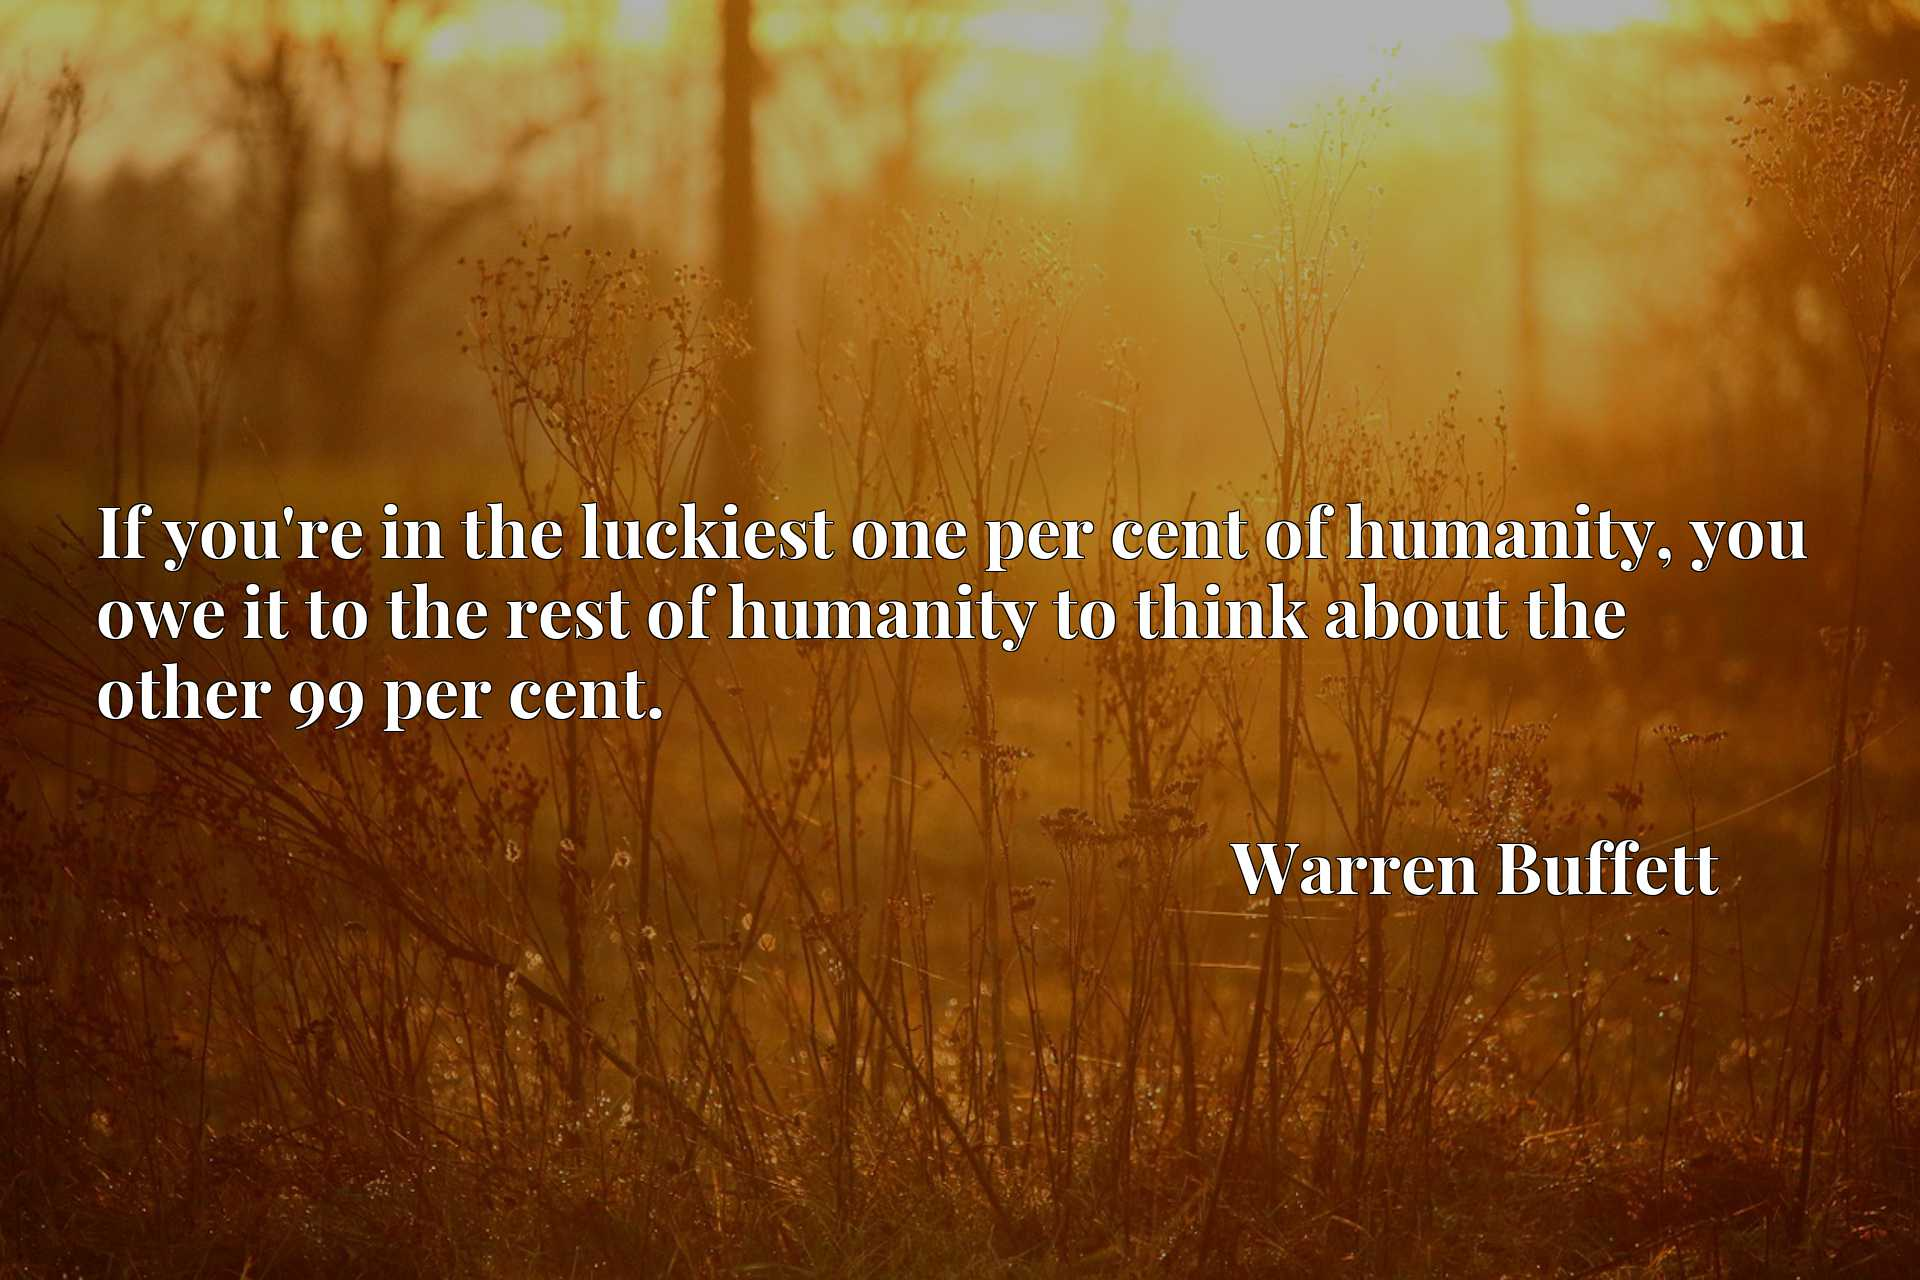 If you're in the luckiest one per cent of humanity, you owe it to the rest of humanity to think about the other 99 per cent.